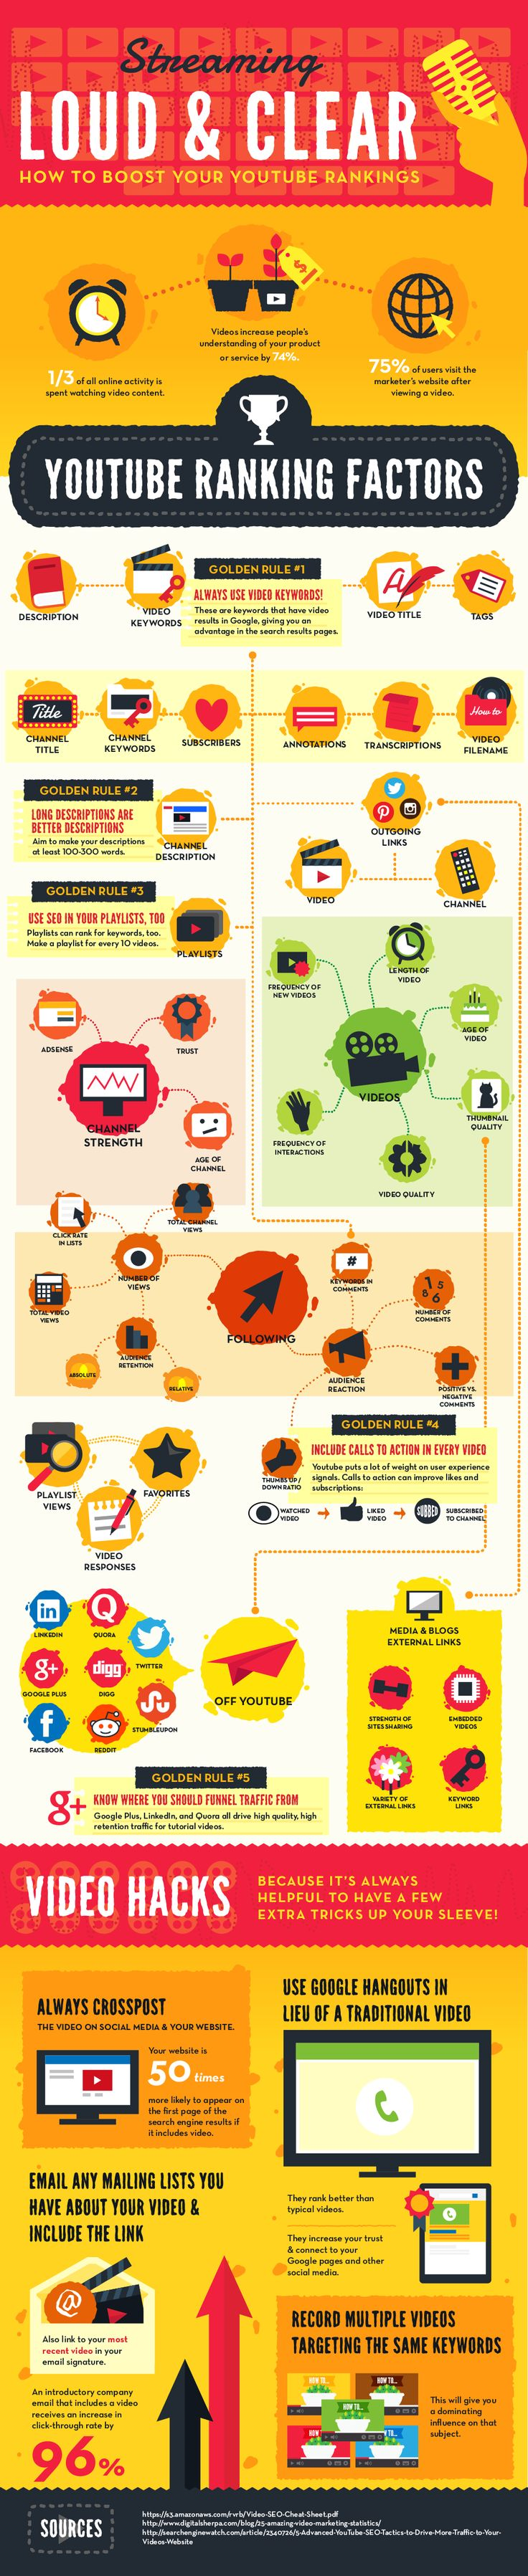 Infographic: Streaming Loud and Clear: How to Boost Your Youtube Rankings #infographic qualitylikesfollowers.com